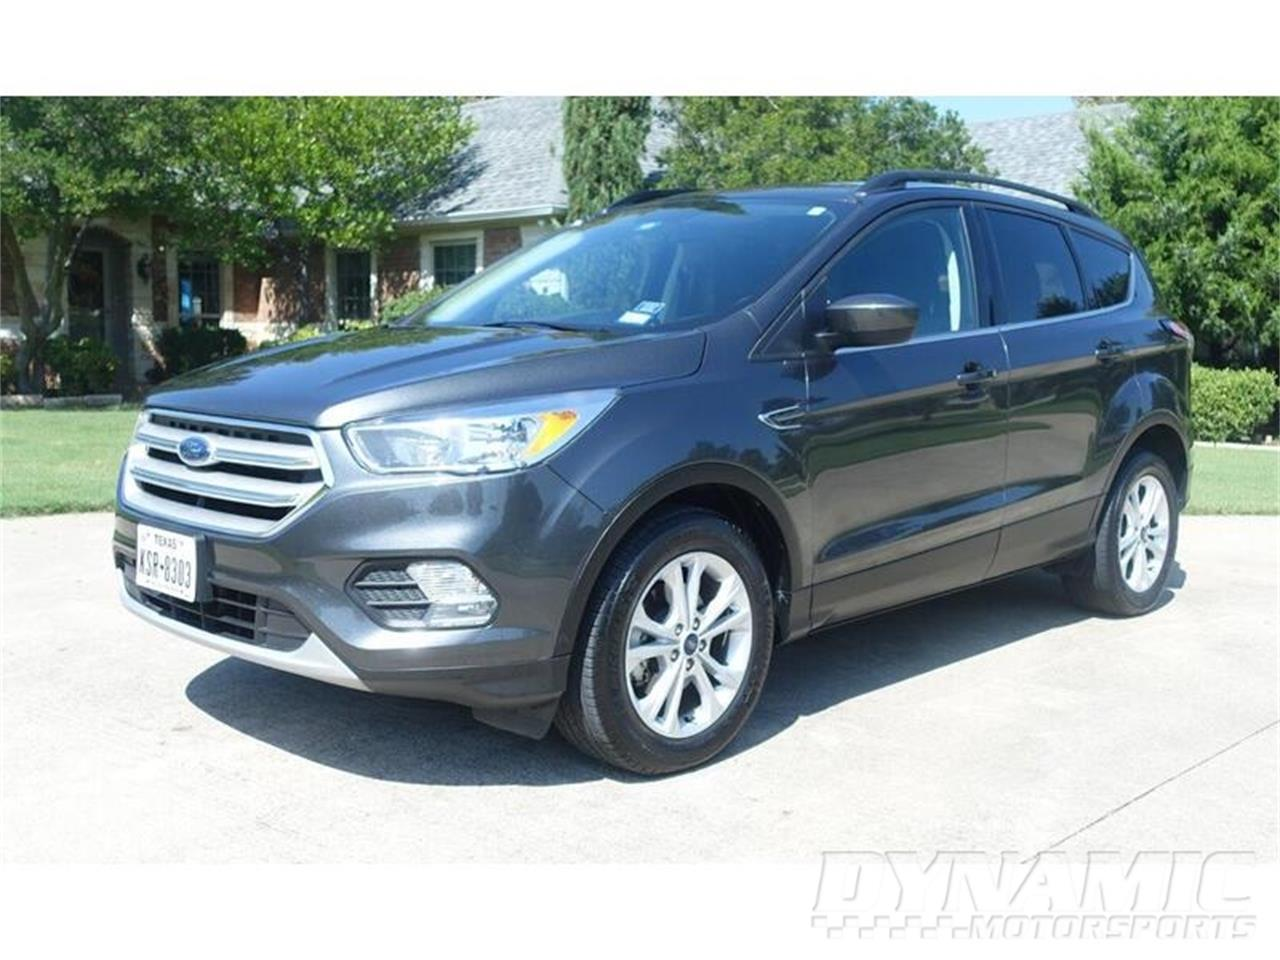 2018 Ford Escape (CC-1394230) for sale in Garland, Texas